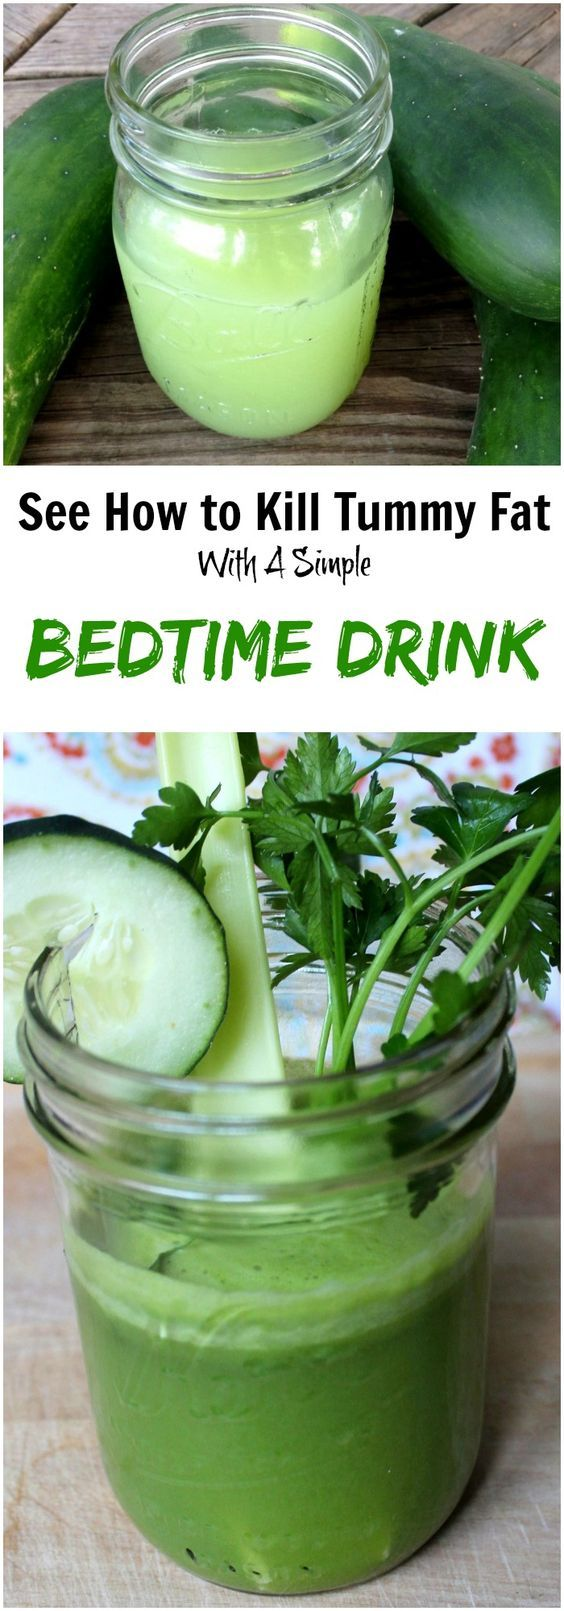 How to Kill Tummy Fat With A Simple Bedtime Drink | Fit and Beauty